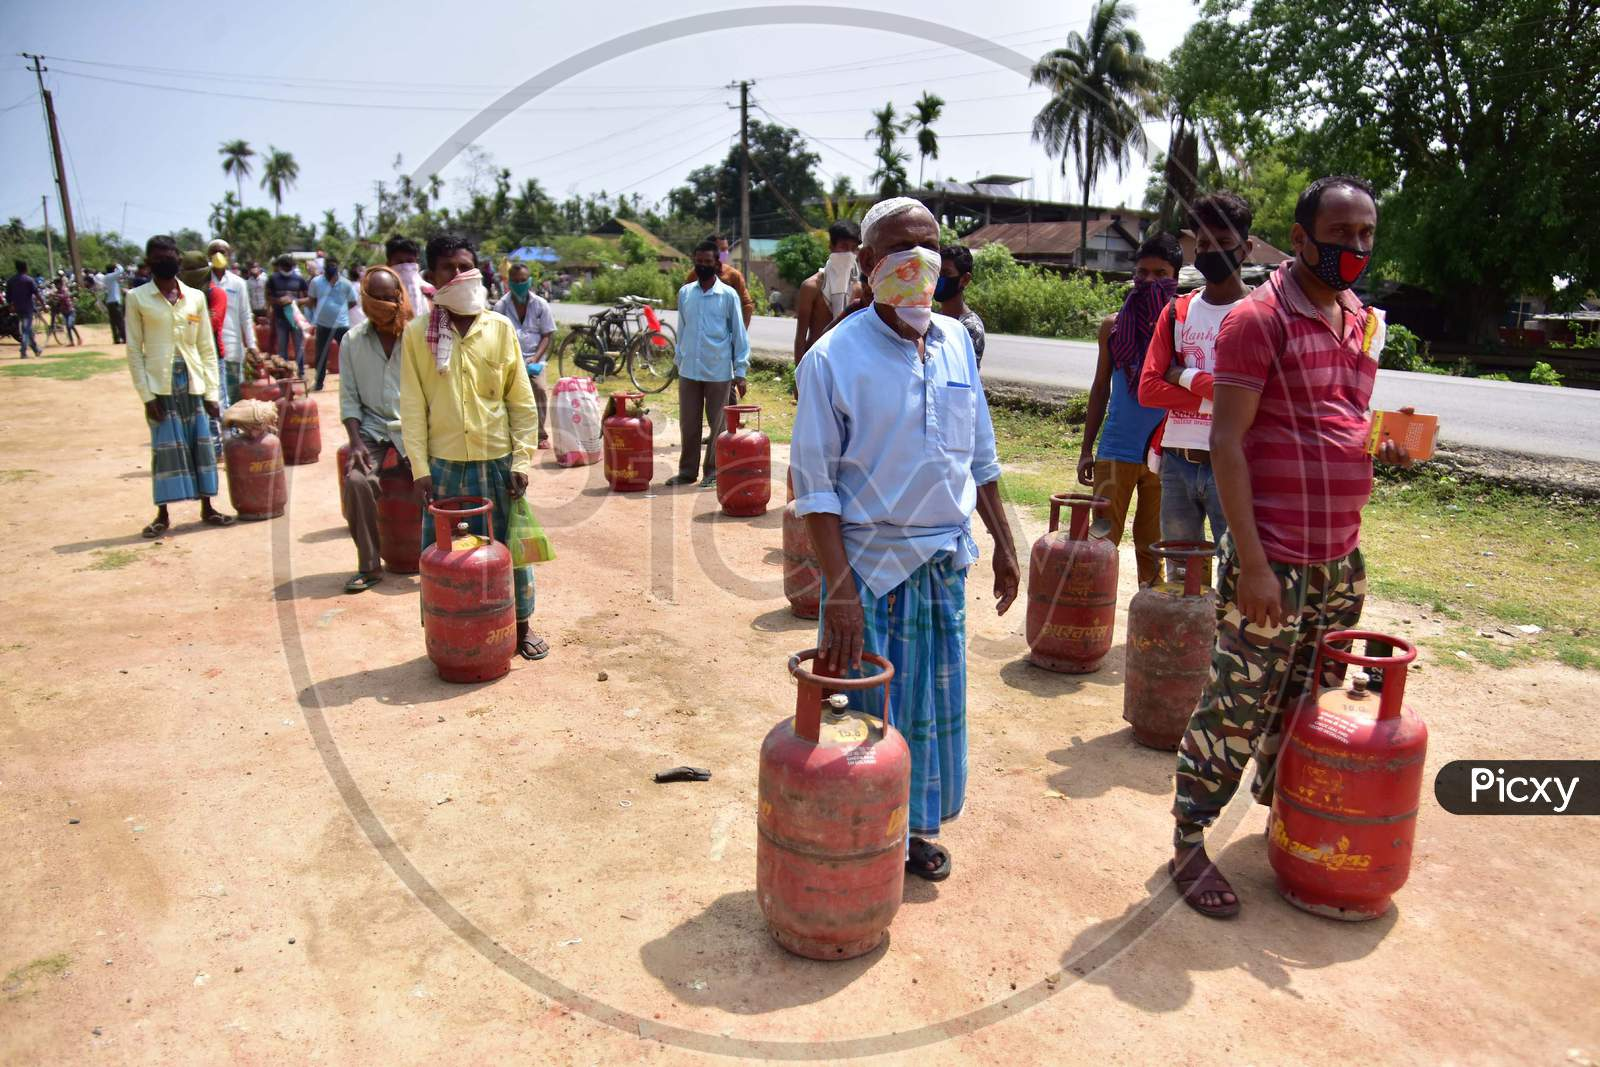 People Maintain Social Distance As They Wait In A Queue  To Collect  Lpg Gas Cylinder  During A Nationwide Lockdown In The Wake Of Coronavirus (Covid-19)  Pandemic, At Samaguri In Nagaon District Of Assam On  Tuesday, April 21, 2020